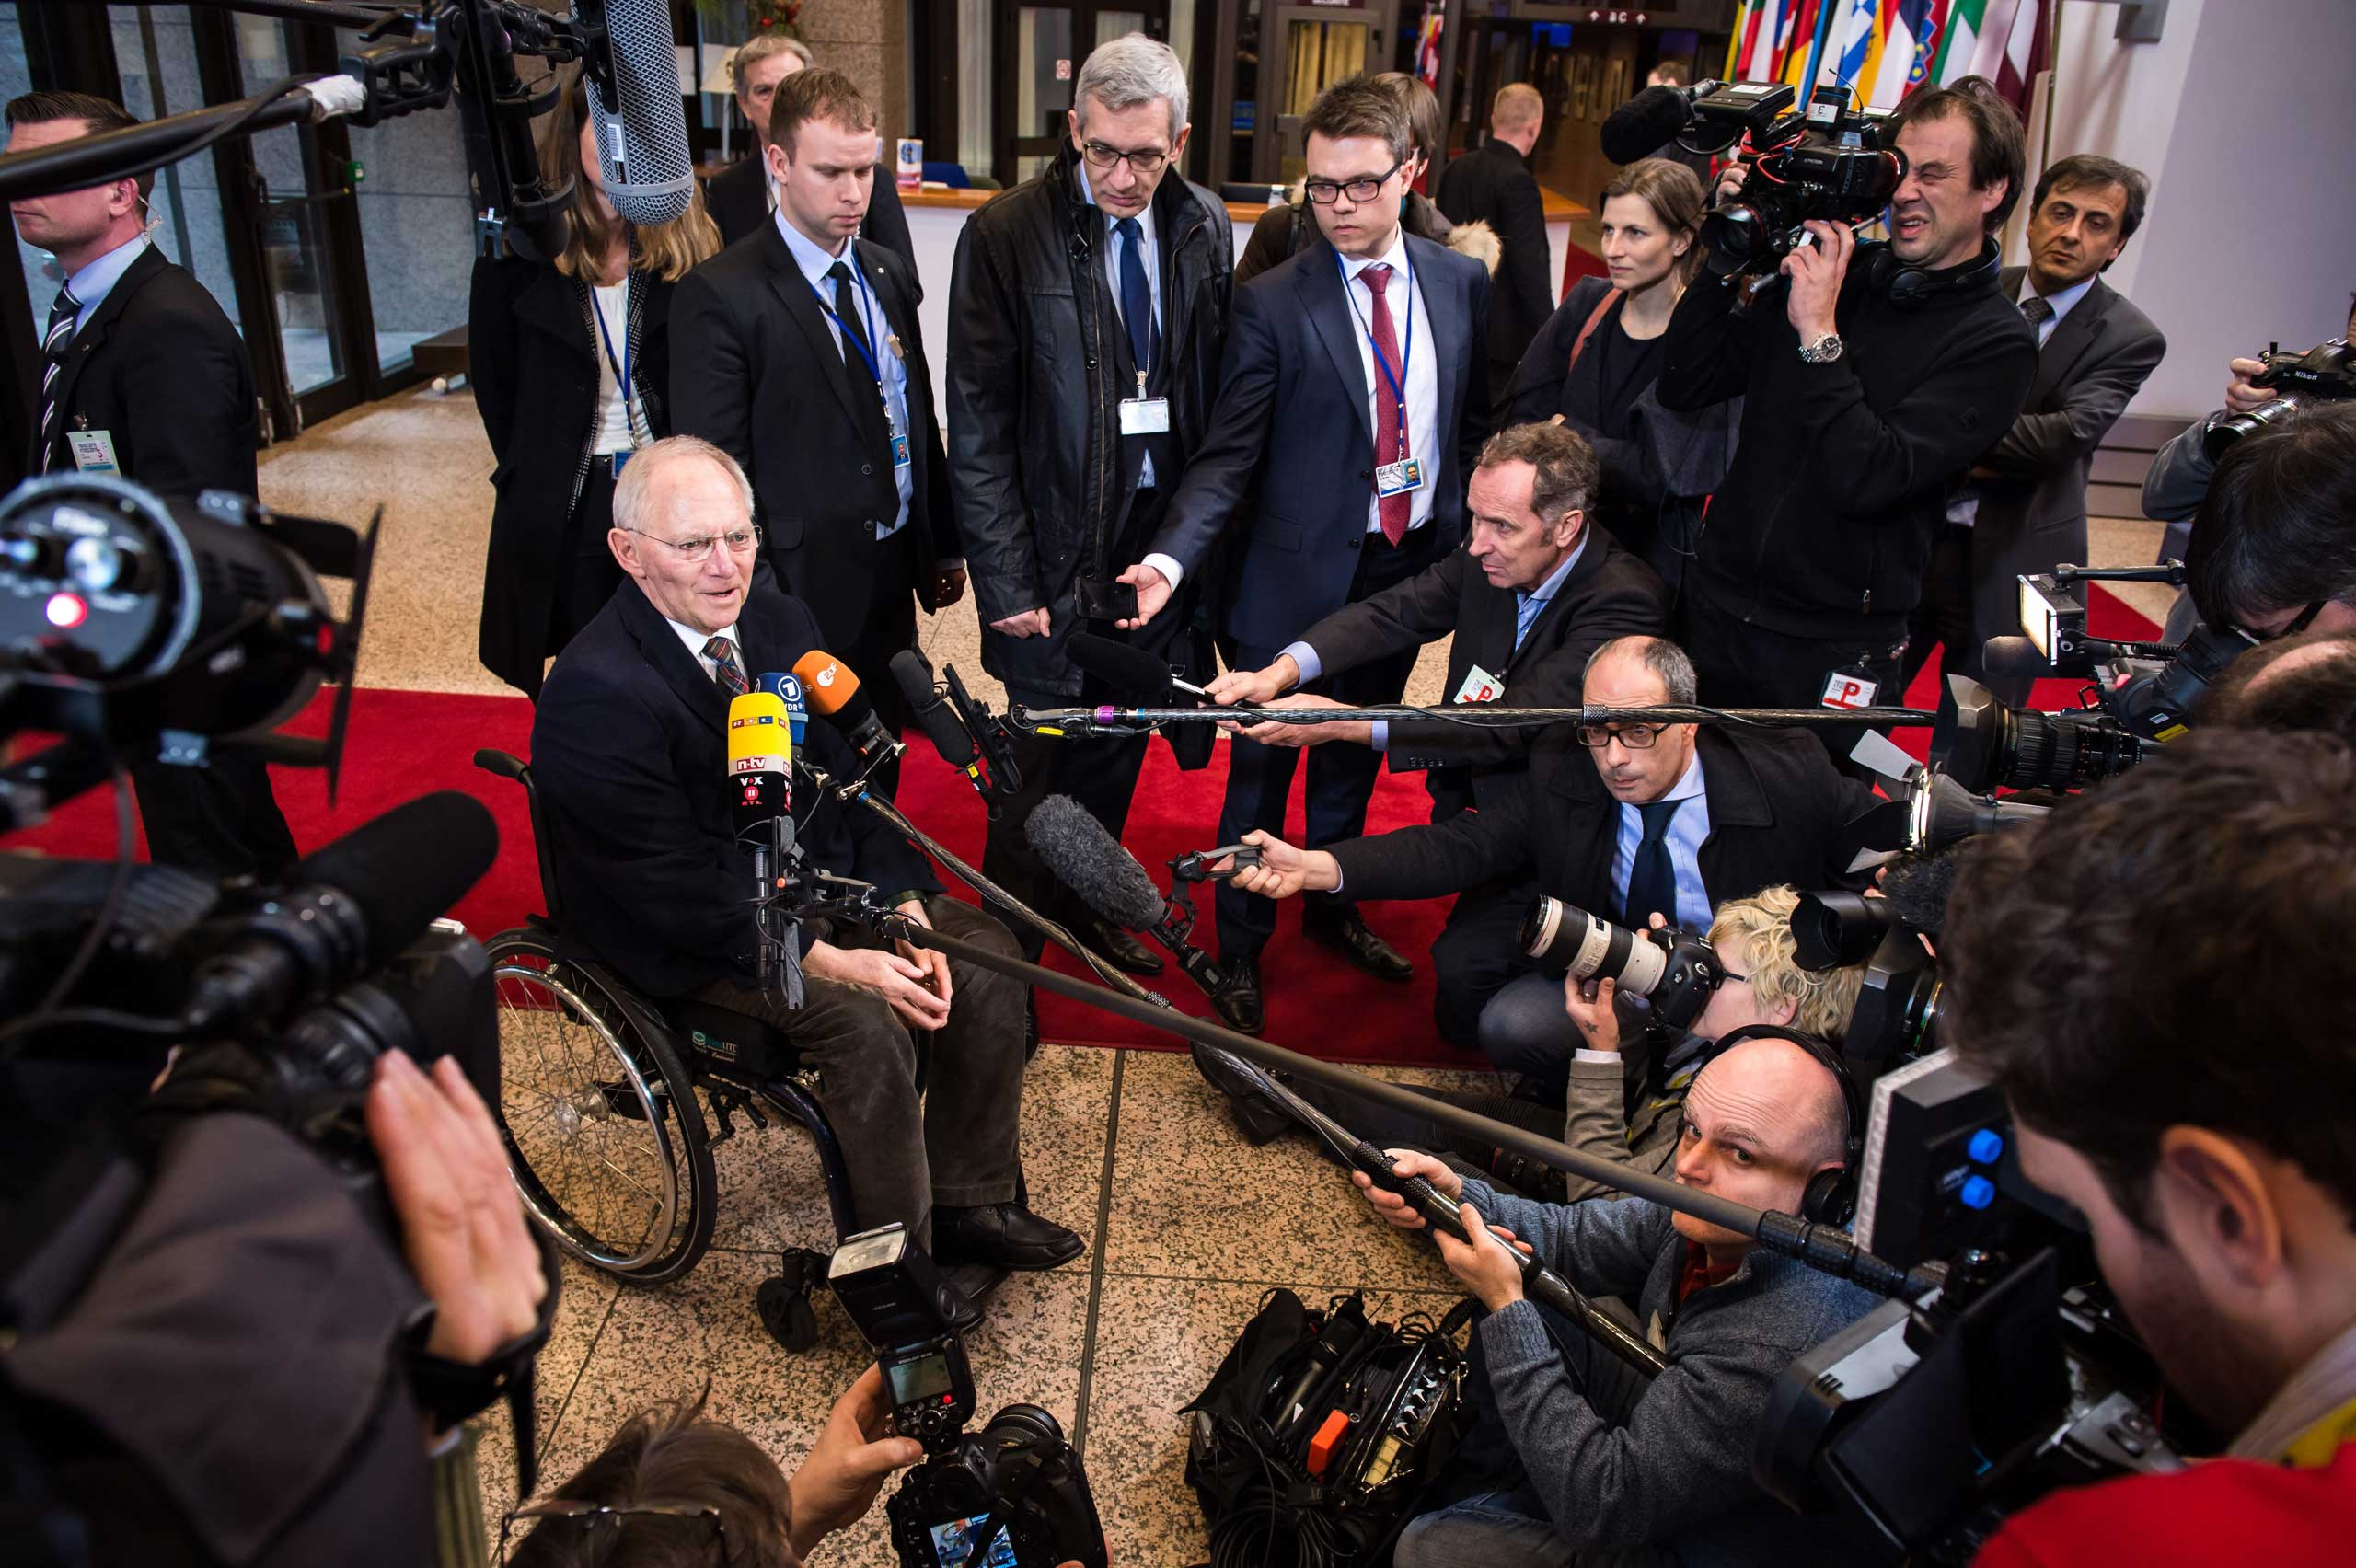 German Finance Minister Wolfgang Schaeuble, left, talks with journalists as he arrives for a meeting of Eurogroup finance ministers at the EU Council building in Brussels on Monday, Feb. 16, 2015.